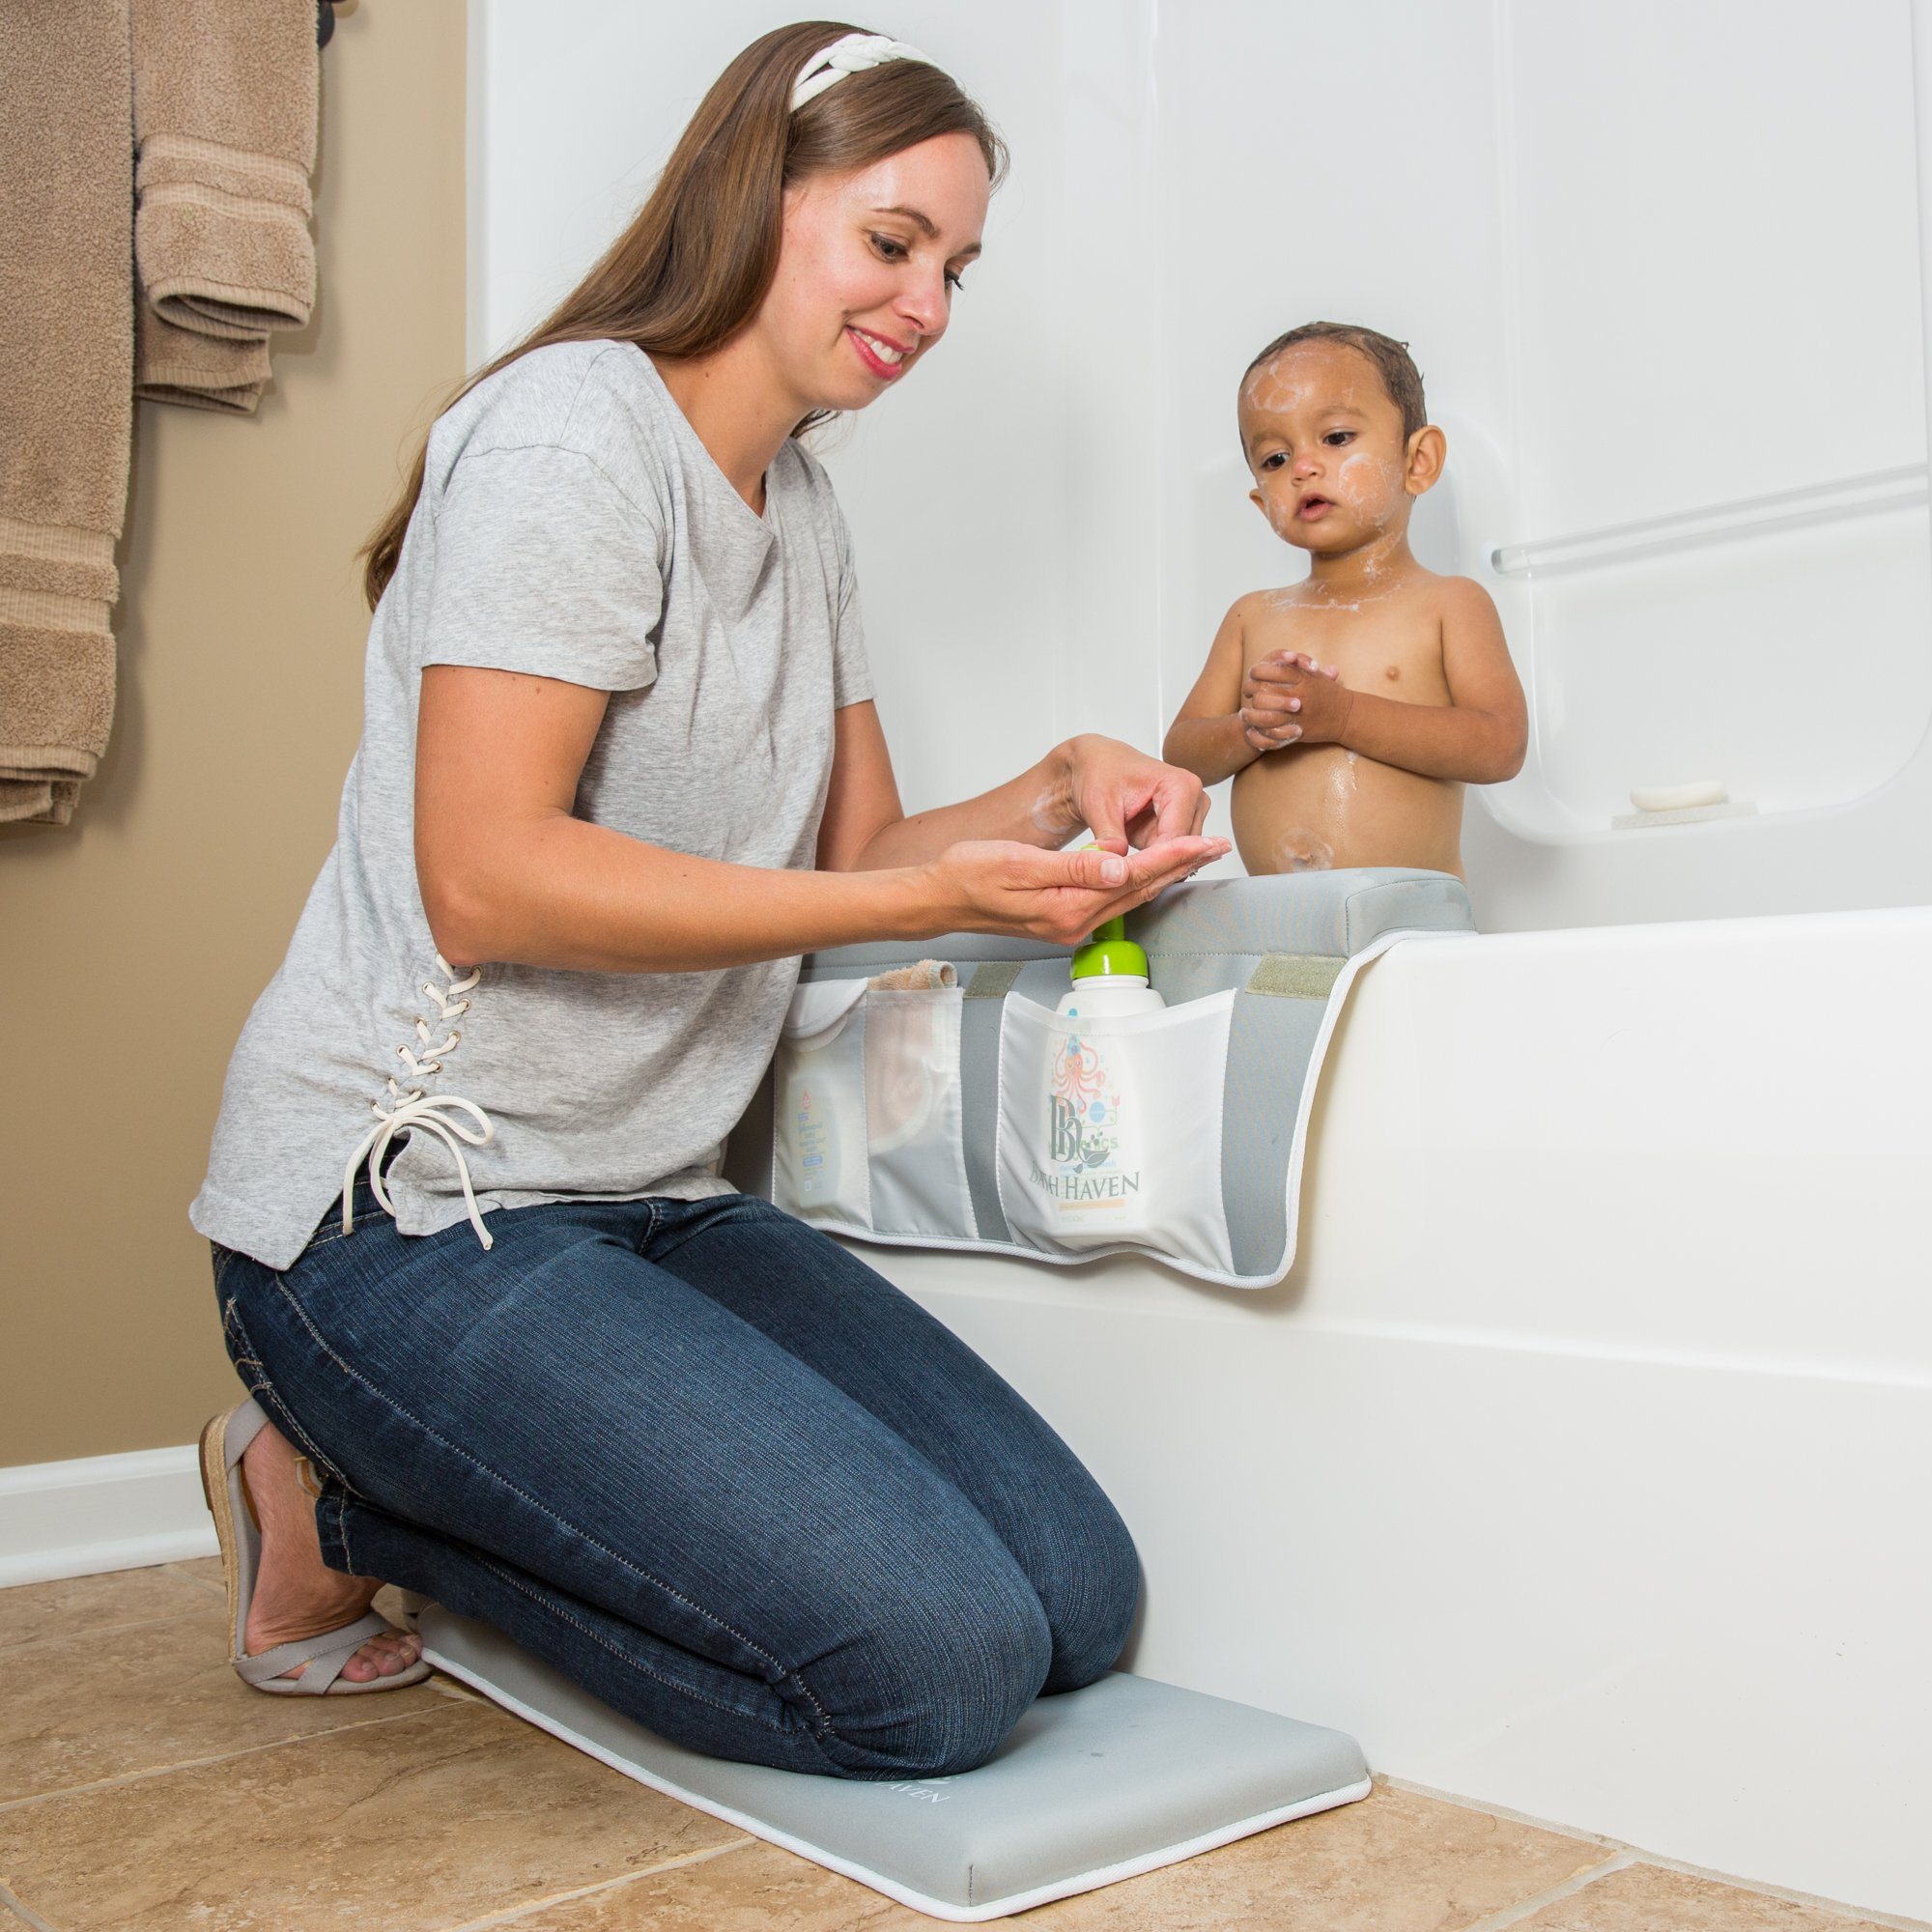 Premium Bath Kneeler and Elbow Rest, 1.5 inch Thick Knee Pad and Elbow Support with Extra Strength Suction Cups for Bathtub Comfort & Safety with Your Baby by Bath Haven (Image #1)